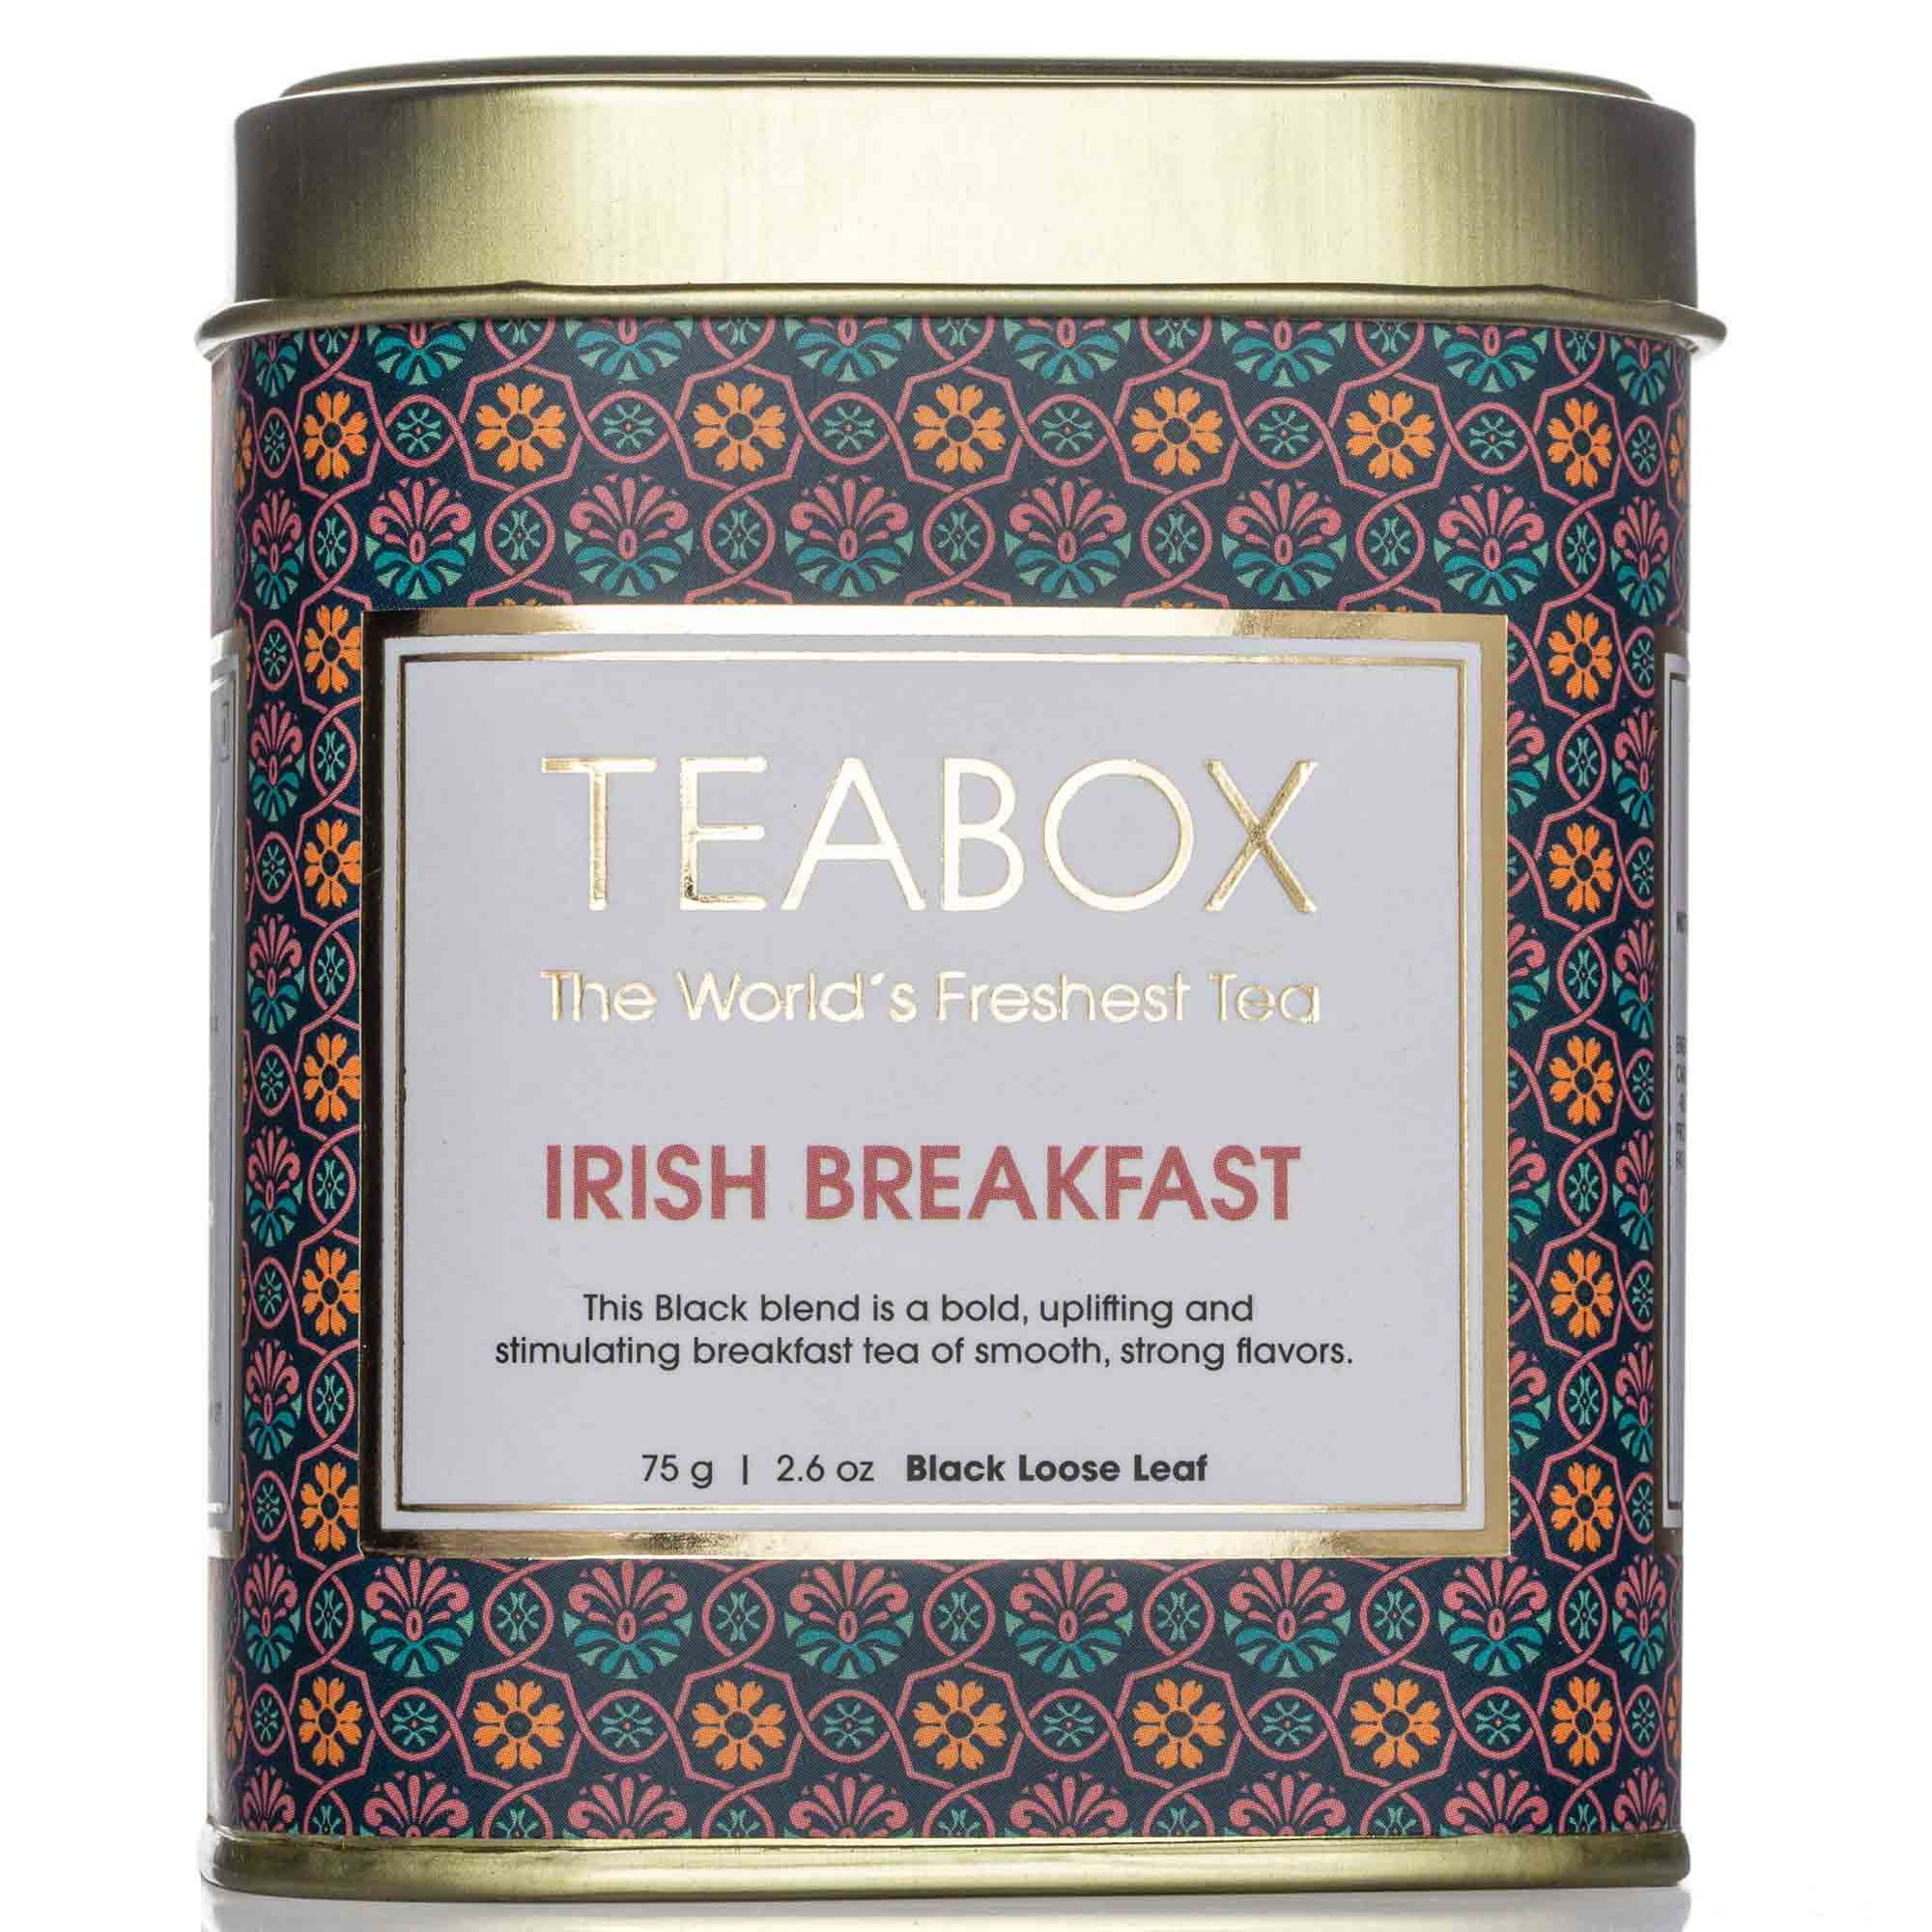 Irish Breakfast Black Tea Tin